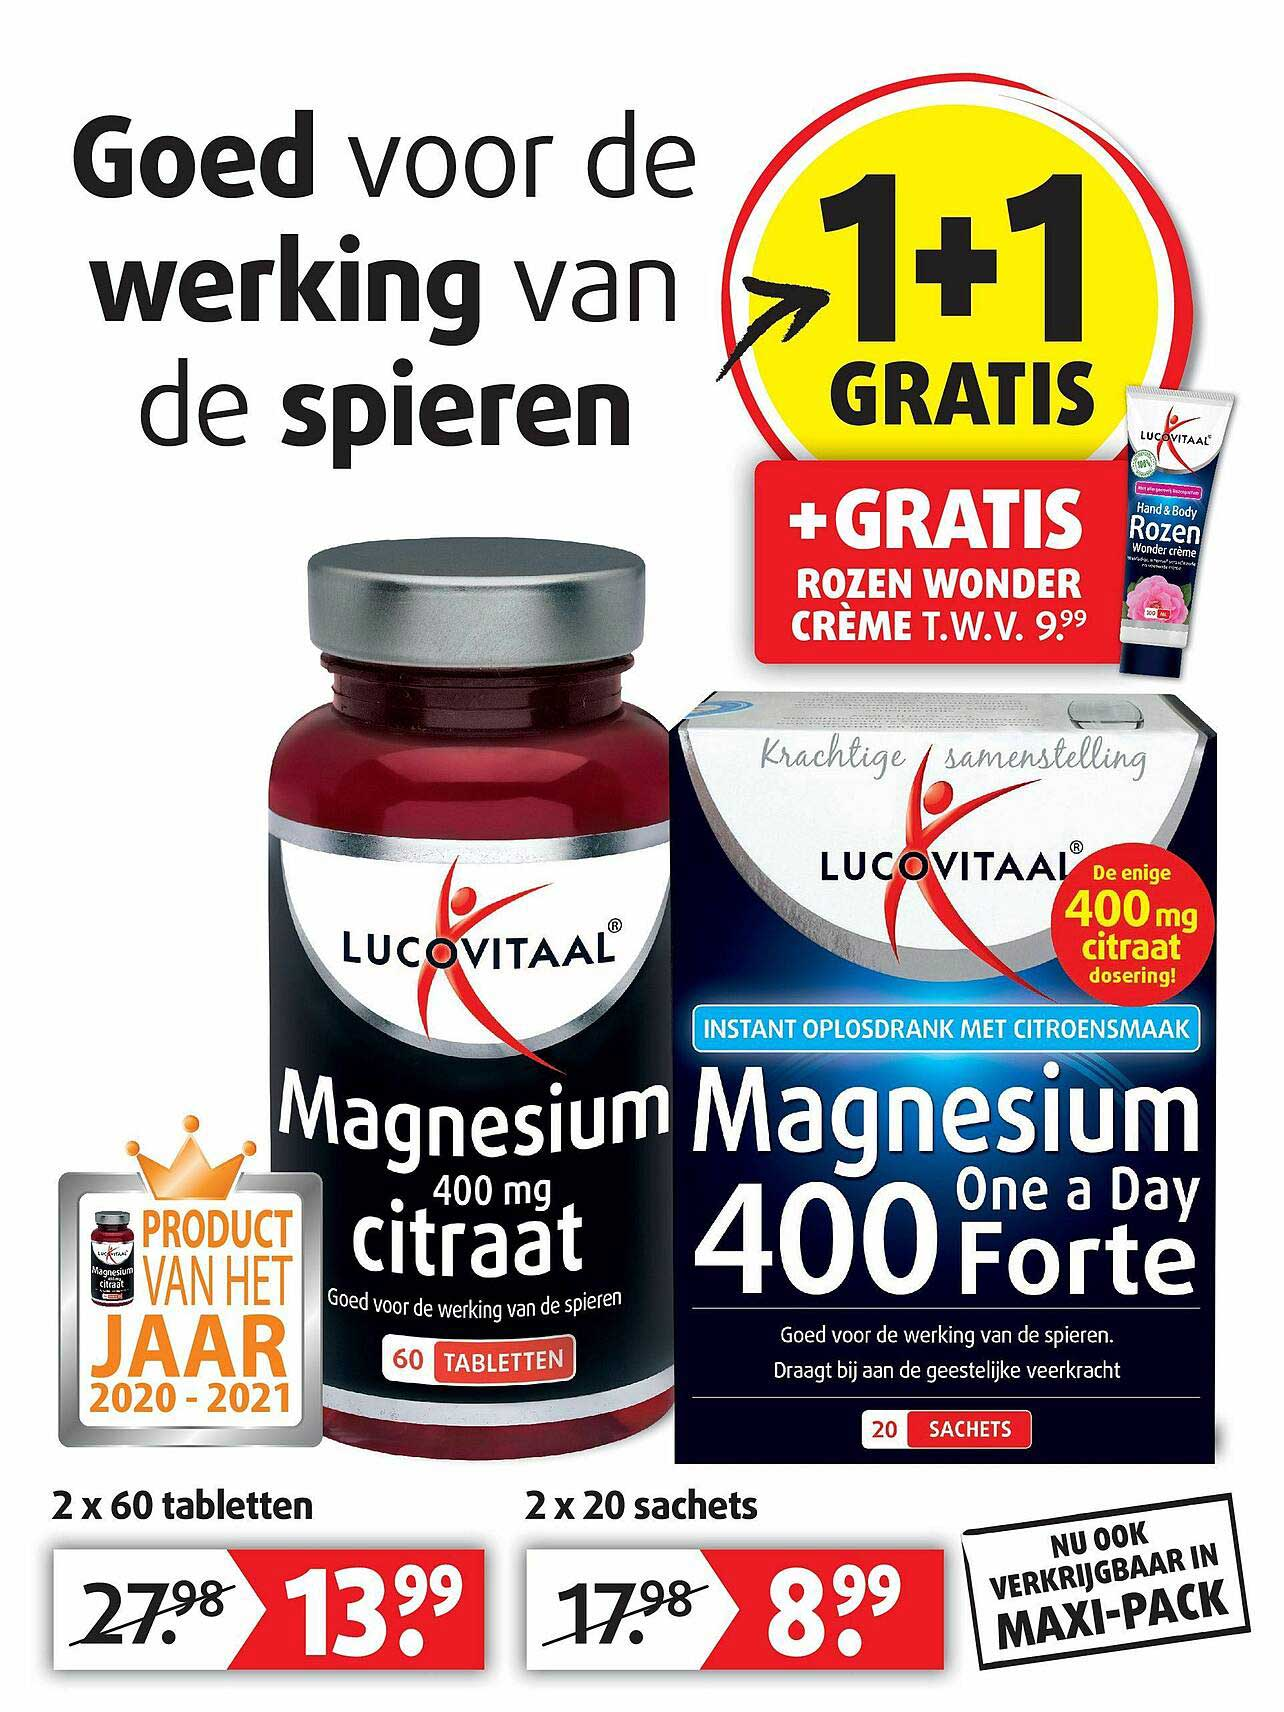 Lucovitaal Lucovitaal Magnesium 400 Mg Citraat Of Magnesium One A Day 400 Forte 1+1 Gratis